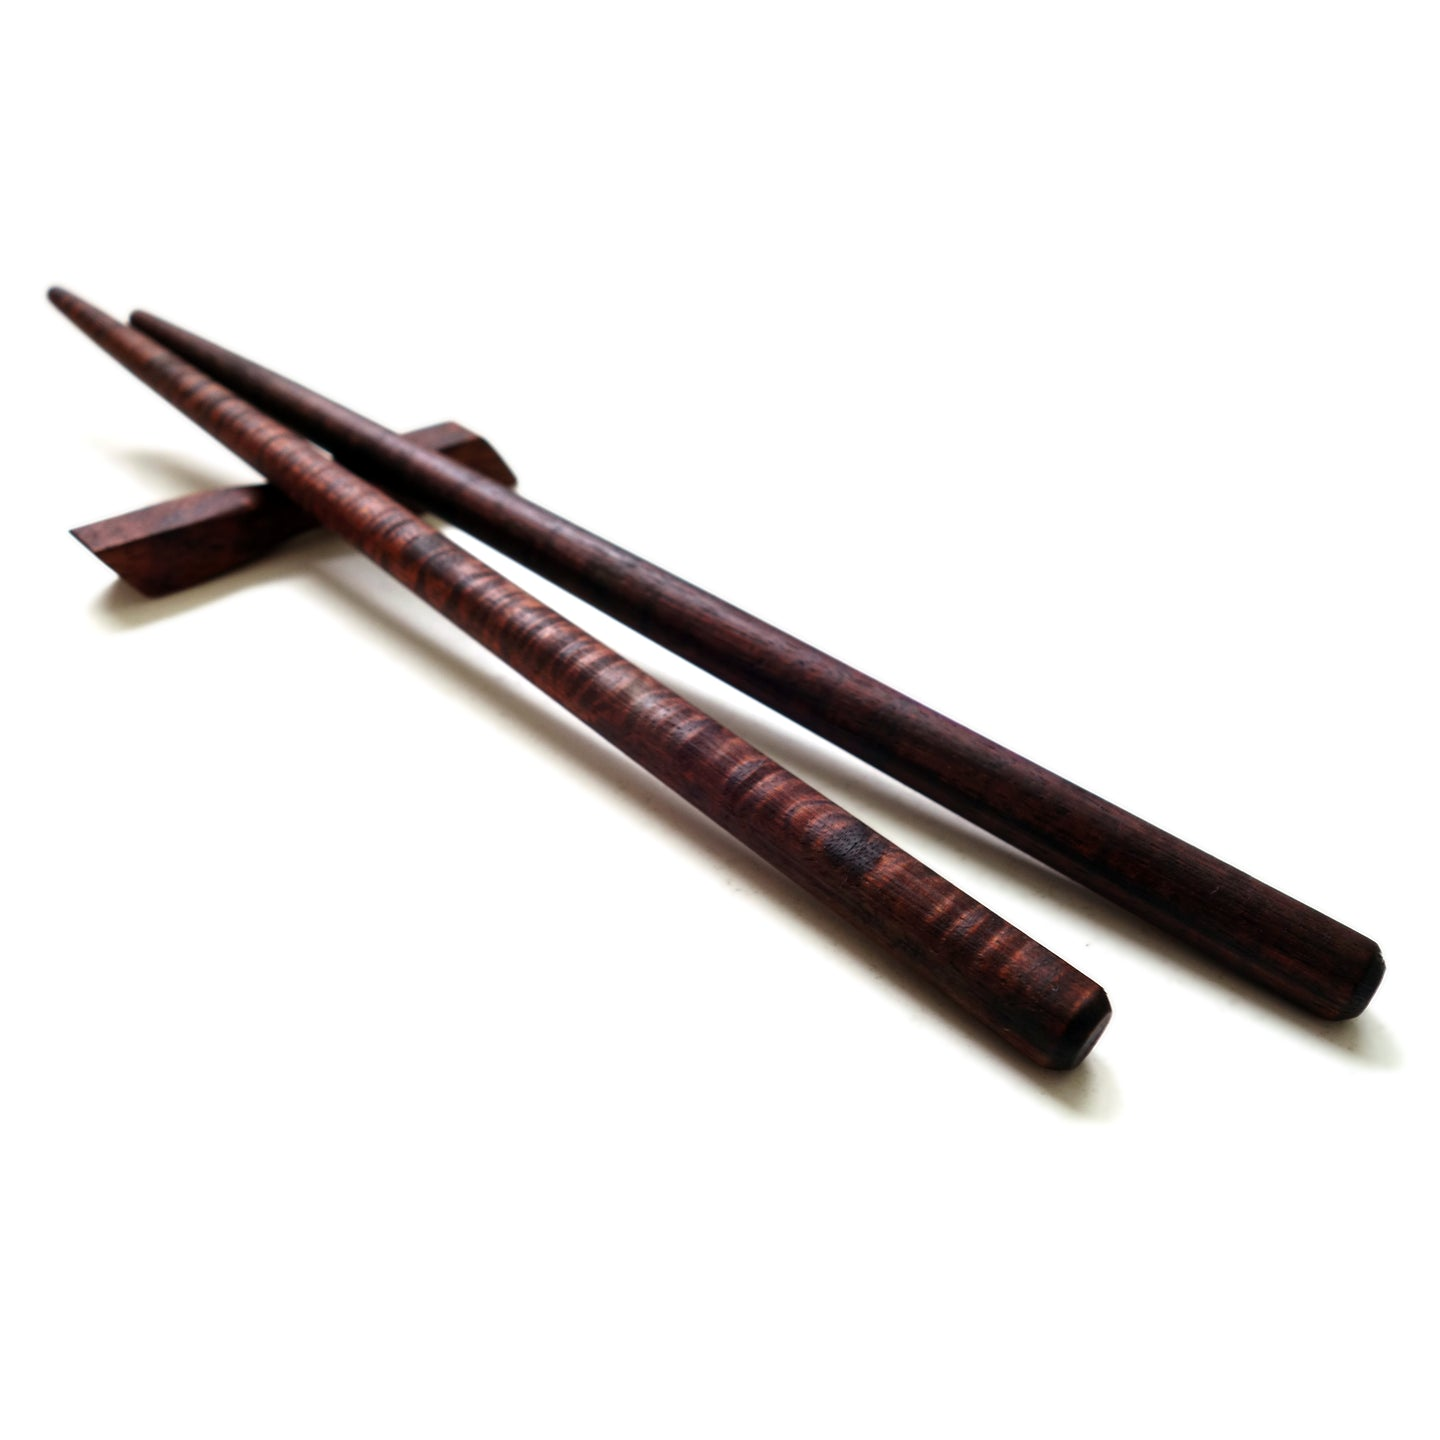 Koa Chopsticks